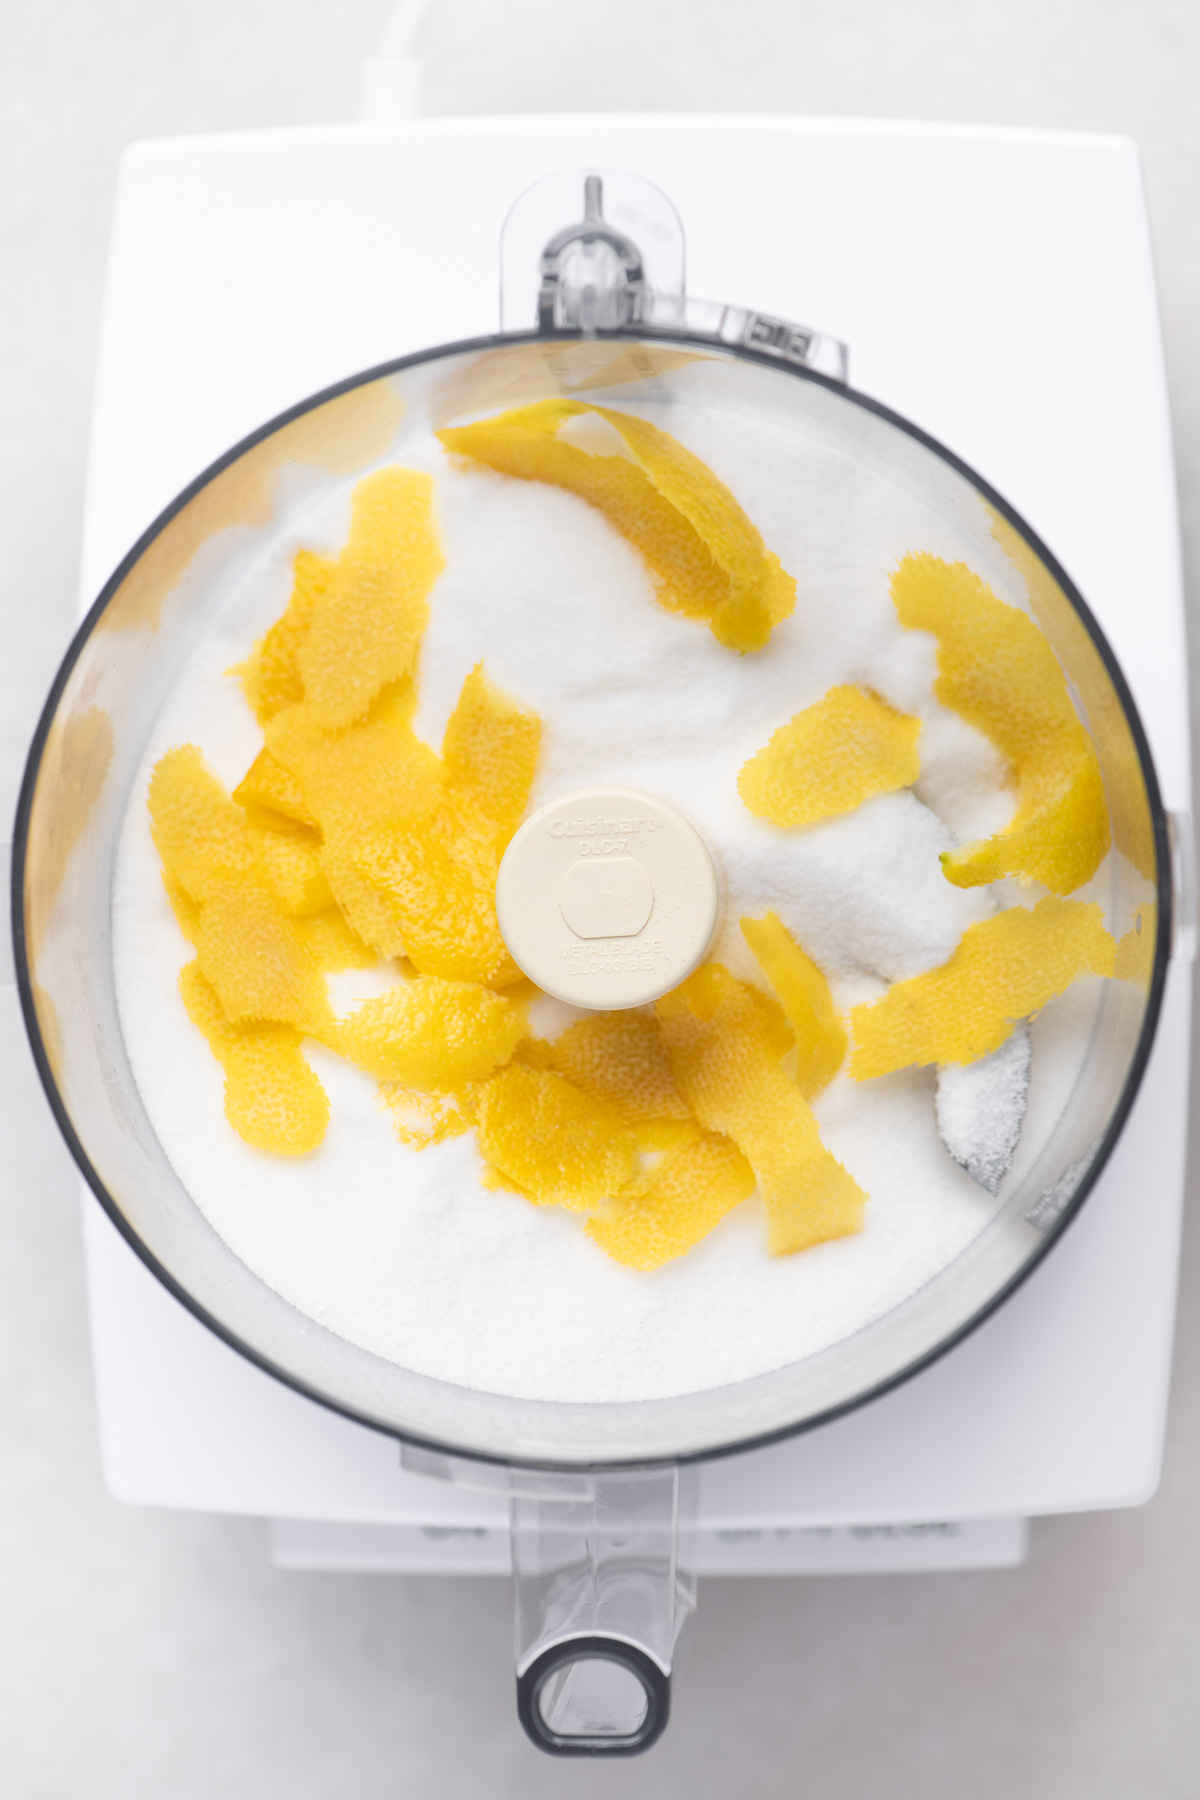 Making lemon sugar in a food processor